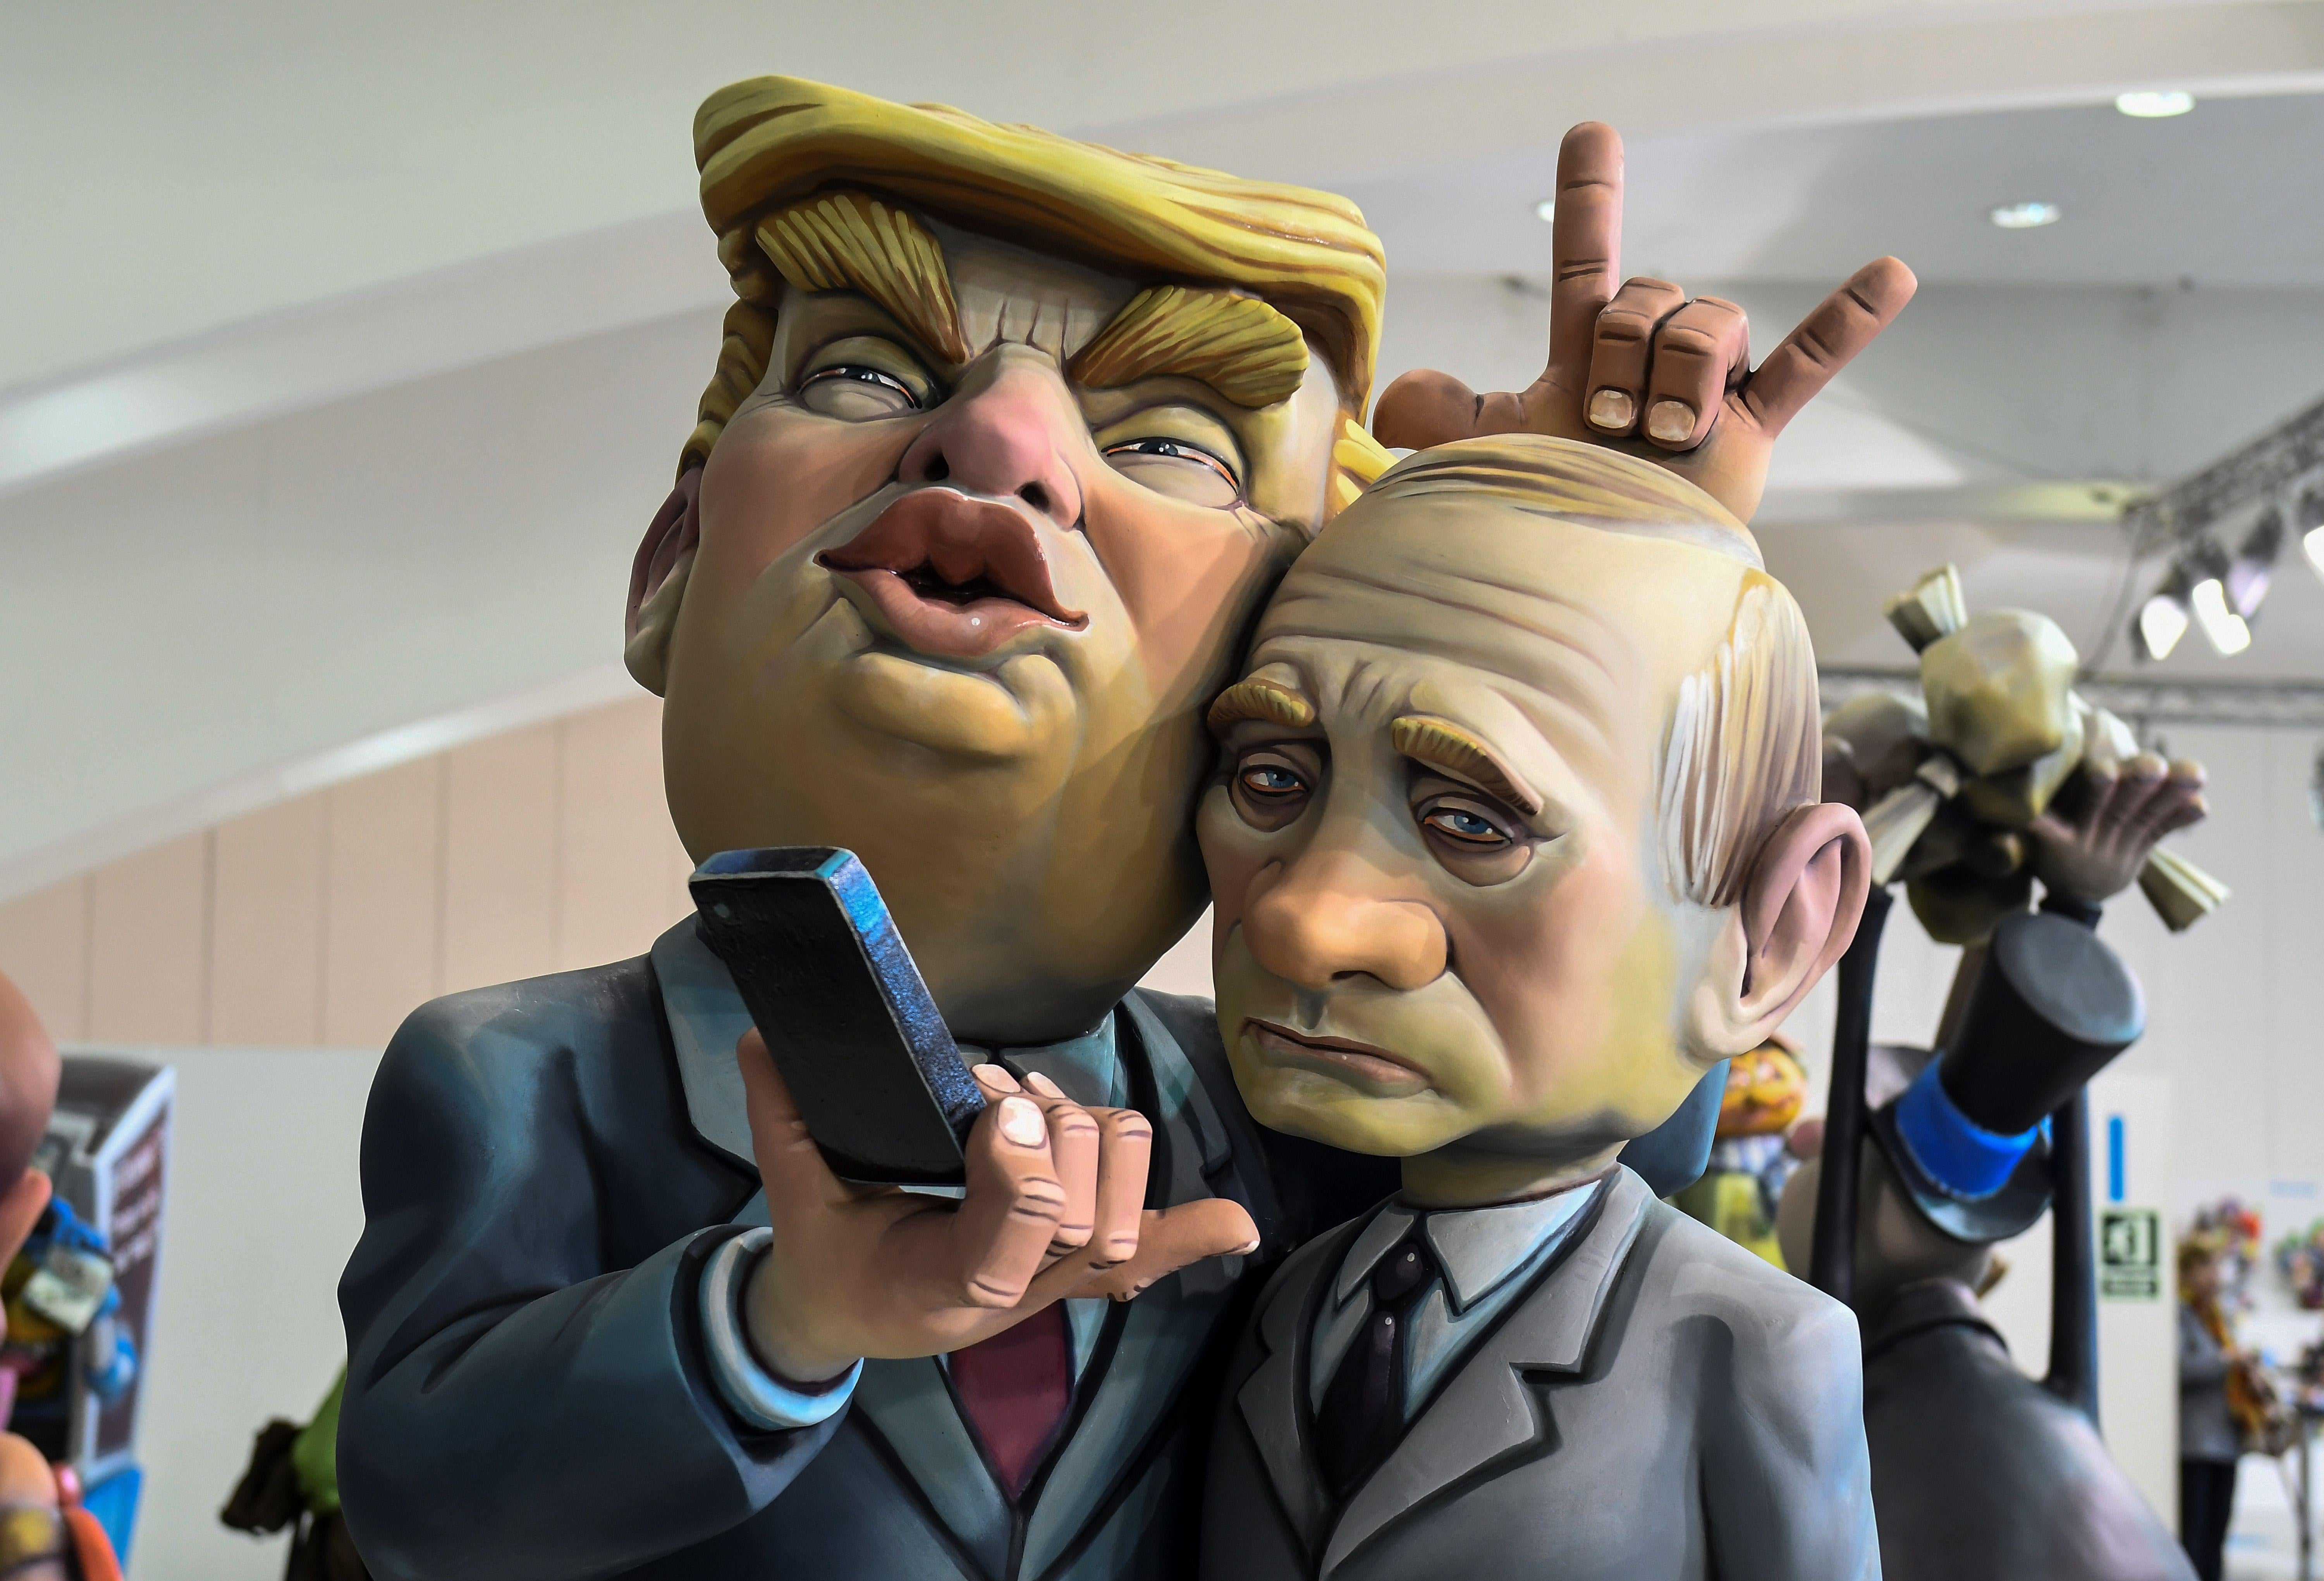 A Ninot, a doll depecting a celebrity that will be set alight during the Fallas festival, representing US President Donald Trump and Russian President Vladimir Putin is displayed in Valencia on March 09, 2018.         Fallas are gigantic structures made of cardboard portraying current events and presonalites in which individual figures or Ninots are placed. The Fallas will be burnt in the streets of Valencia on March 19, 2018 as a tribute to Saint Joseph, patron saint of the carpenters'guild. / AFP PHOTO / JOSE JORDAN        (Photo credit should read JOSE JORDAN/AFP/Getty Images)